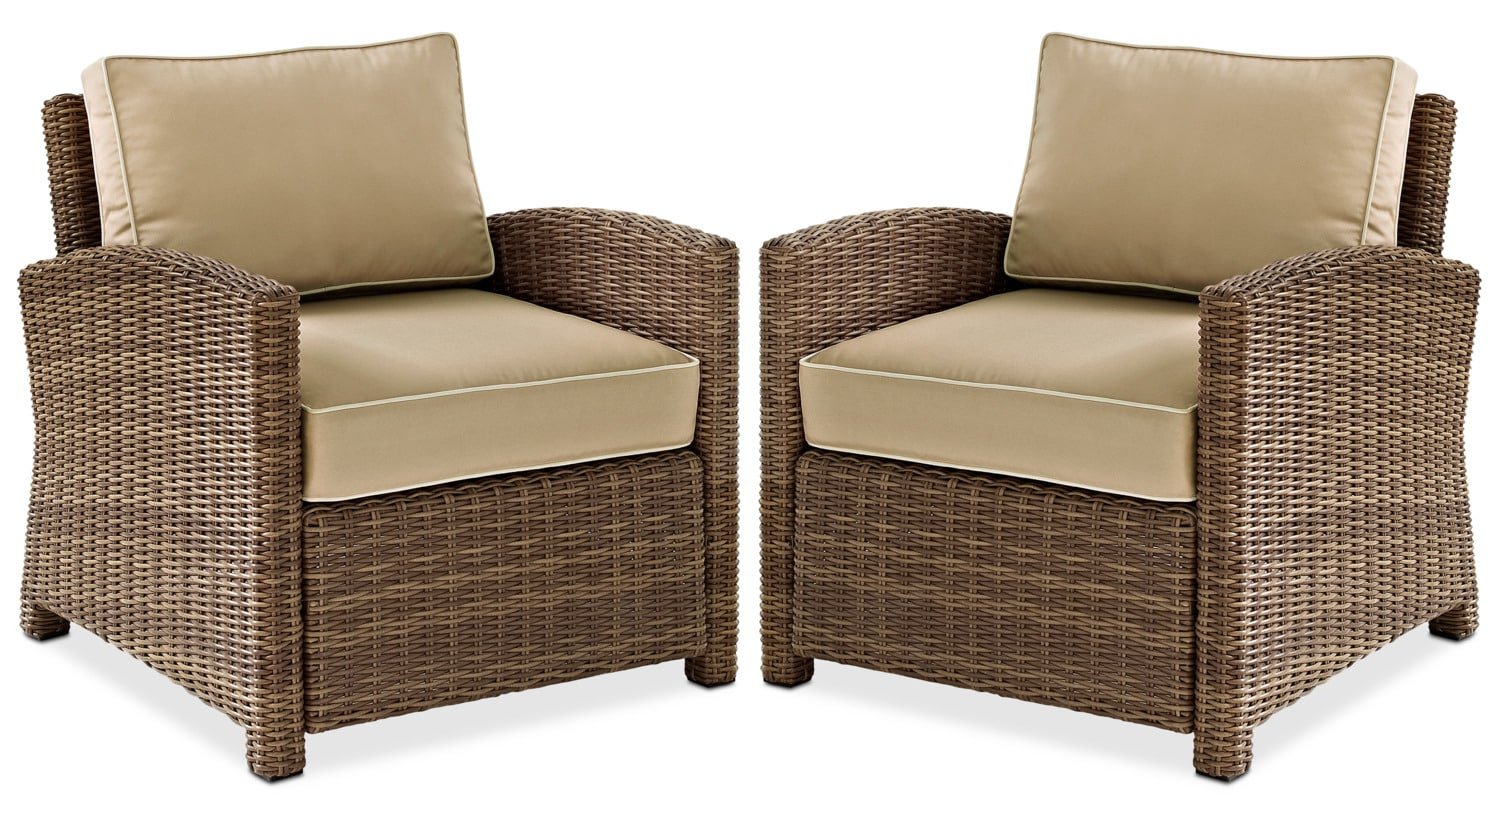 Outdoor Chair Set Destin Set Of 2 Outdoor Chairs